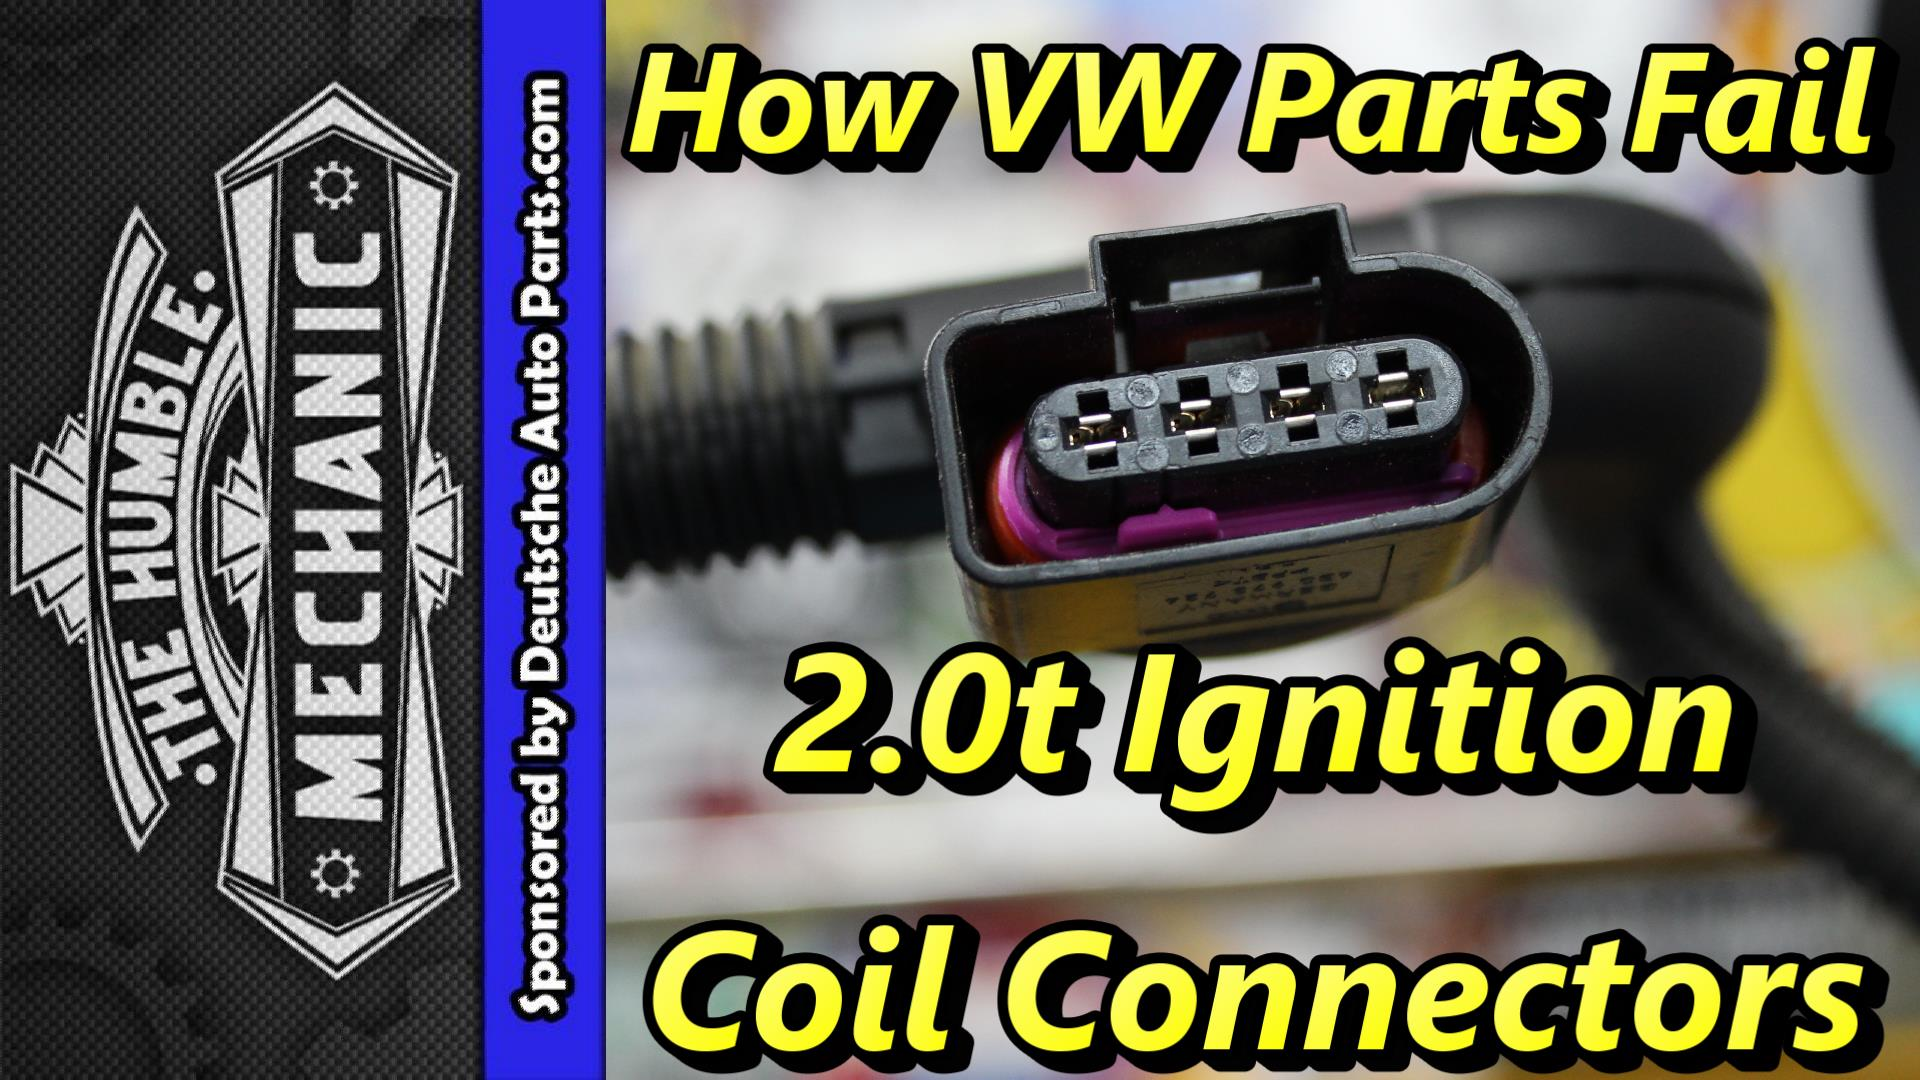 How Vw Parts Fail 2 0t Ignition Coil Connectors